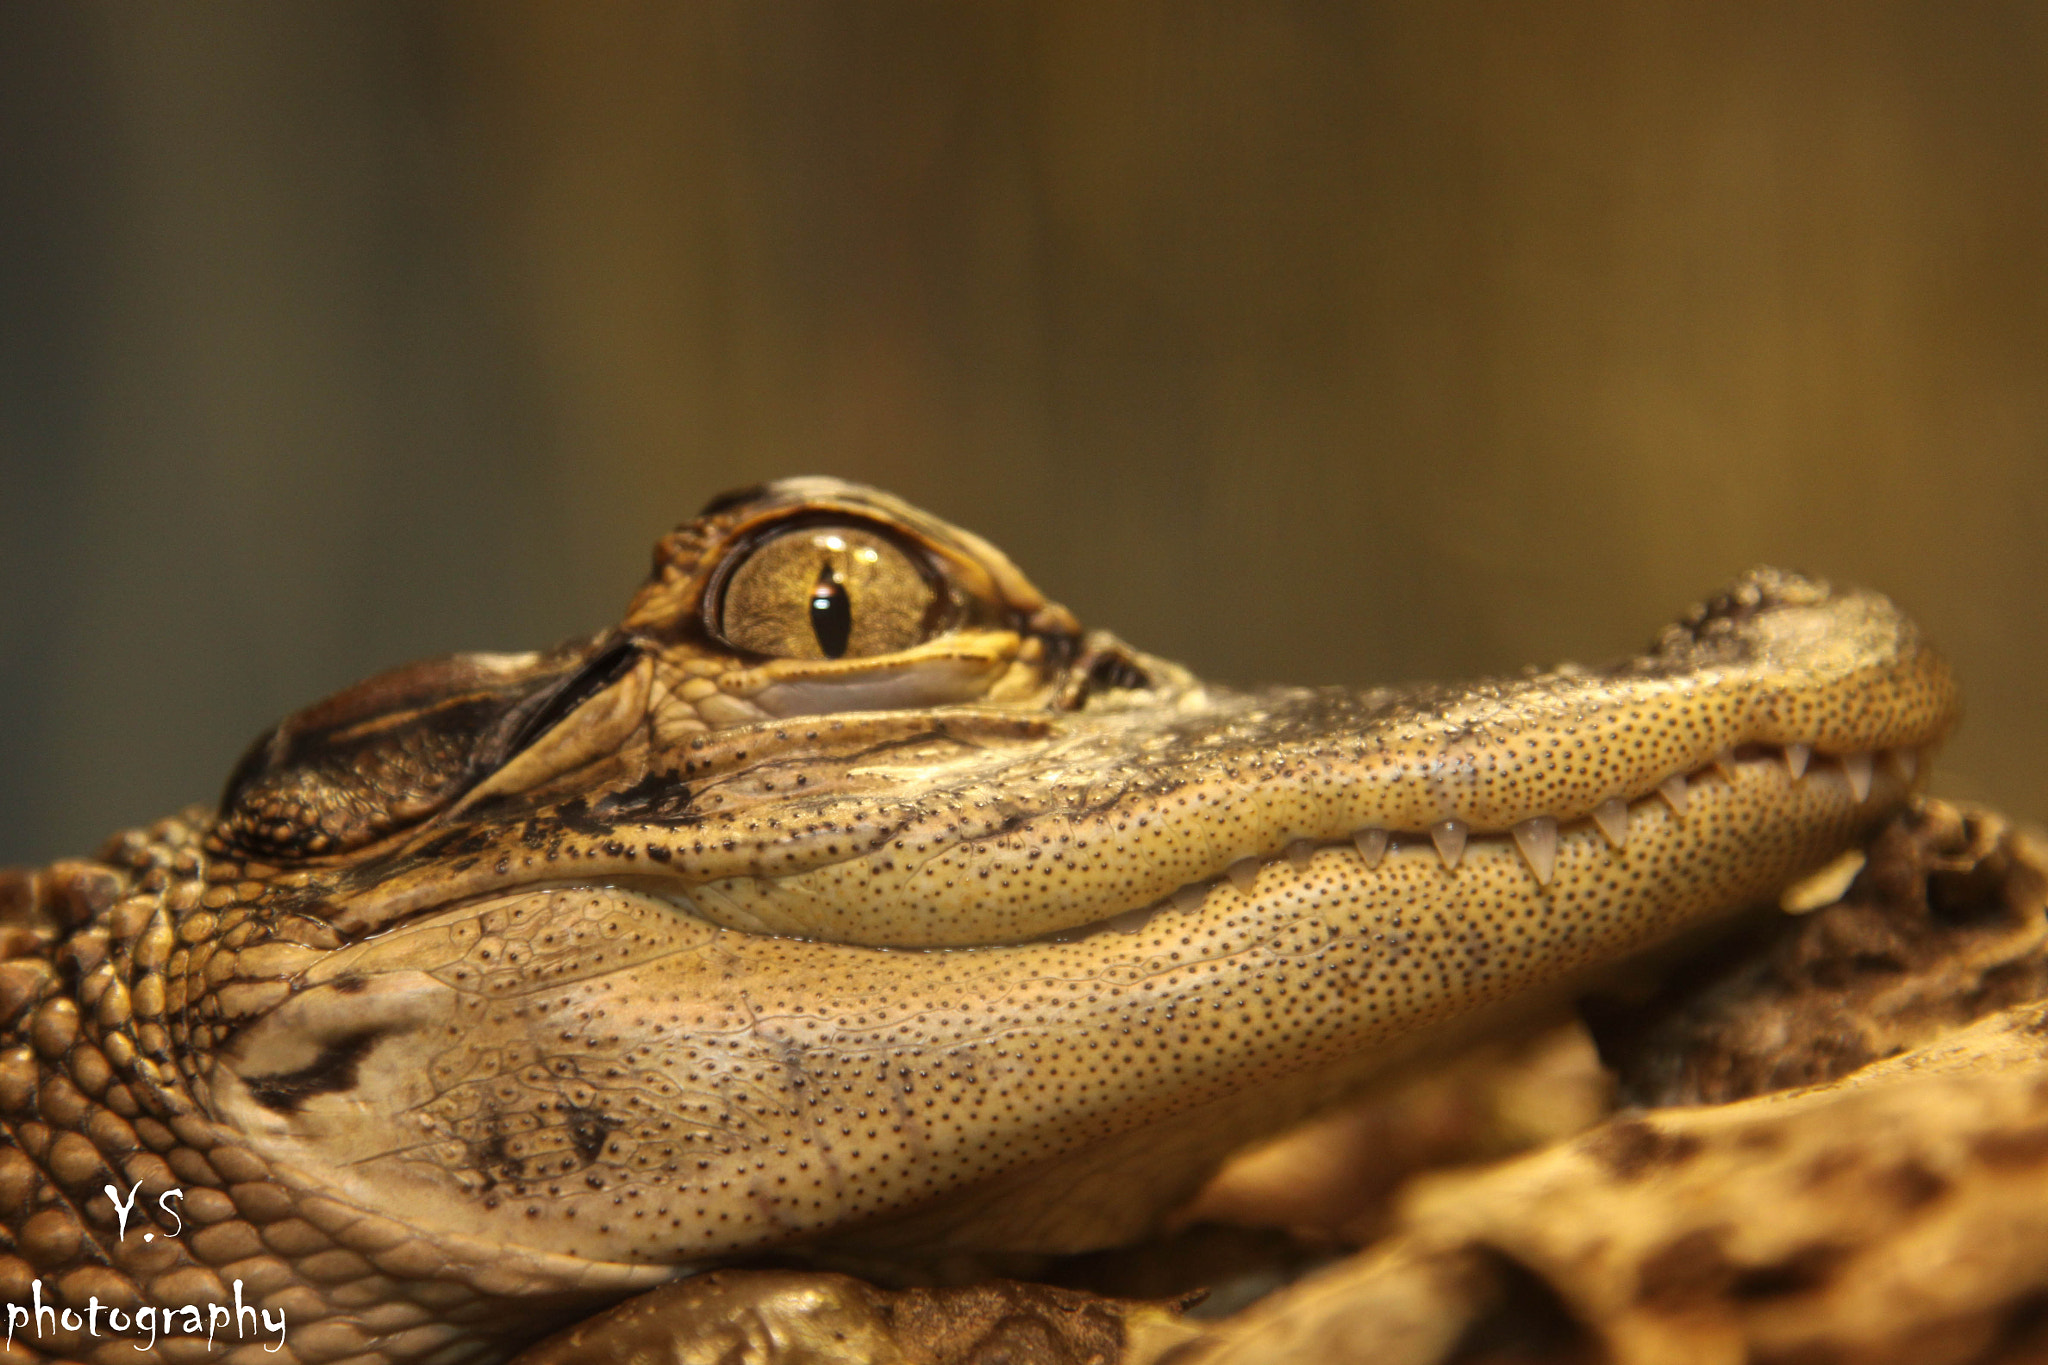 Photograph crocodile by yuval shohat on 500px